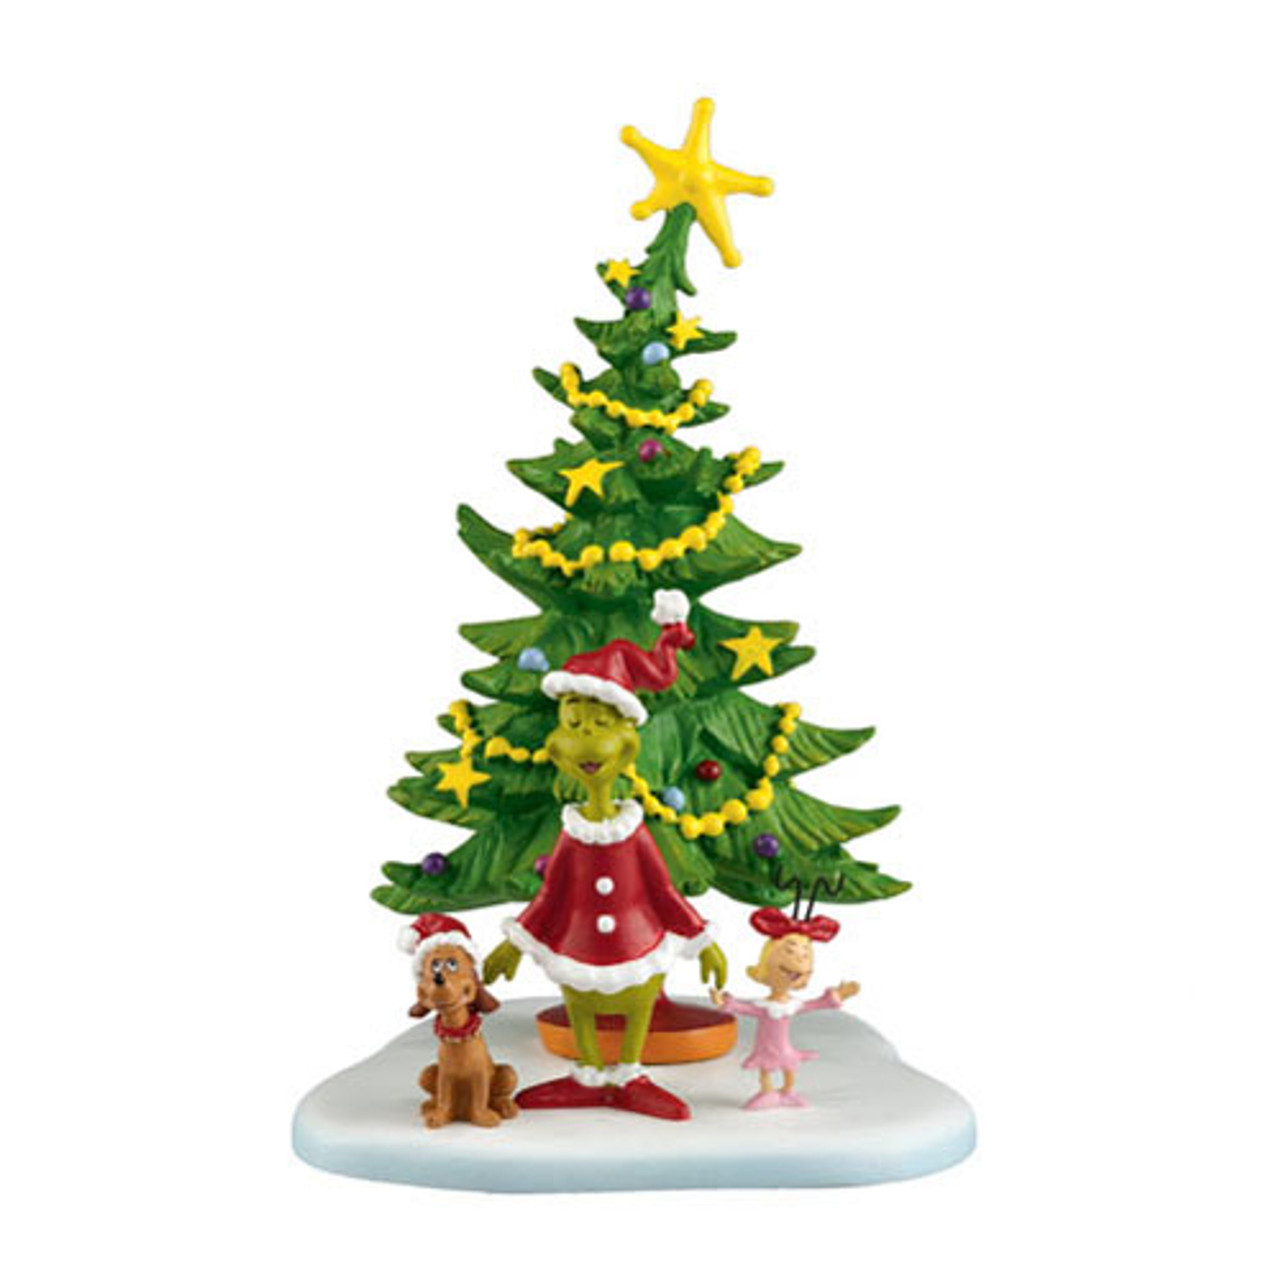 Welcome Christmas Grinch.Dept 56 The Grinch Welcome Christmas Christmas Day